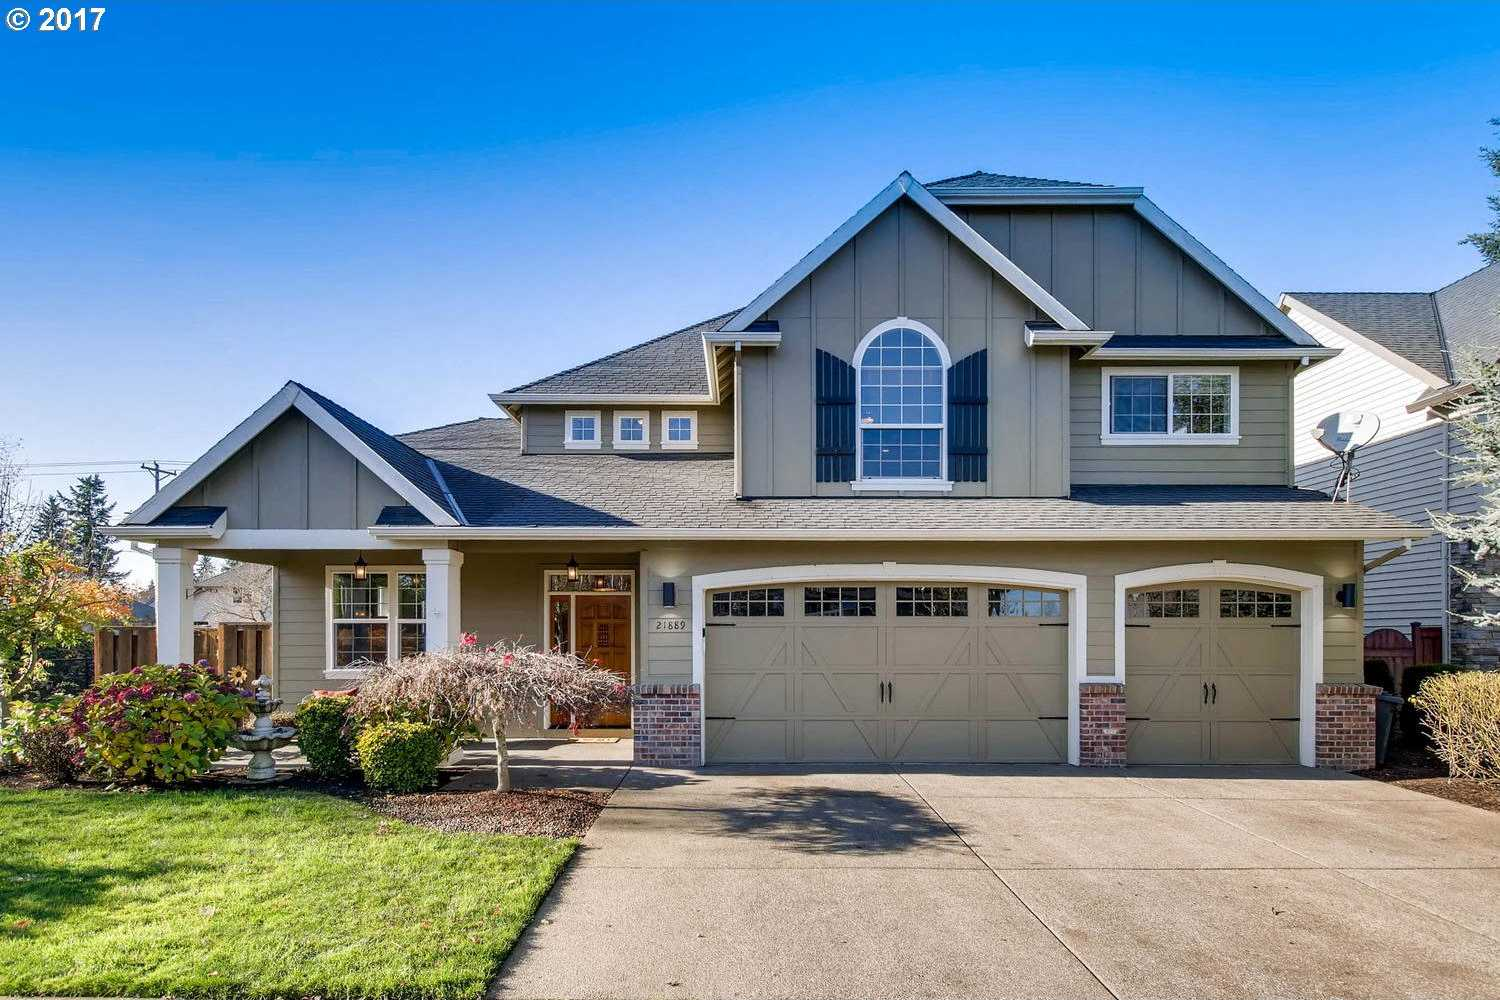 $659,900 - 4Br/3Ba -  for Sale in Park View Estates, Tualatin